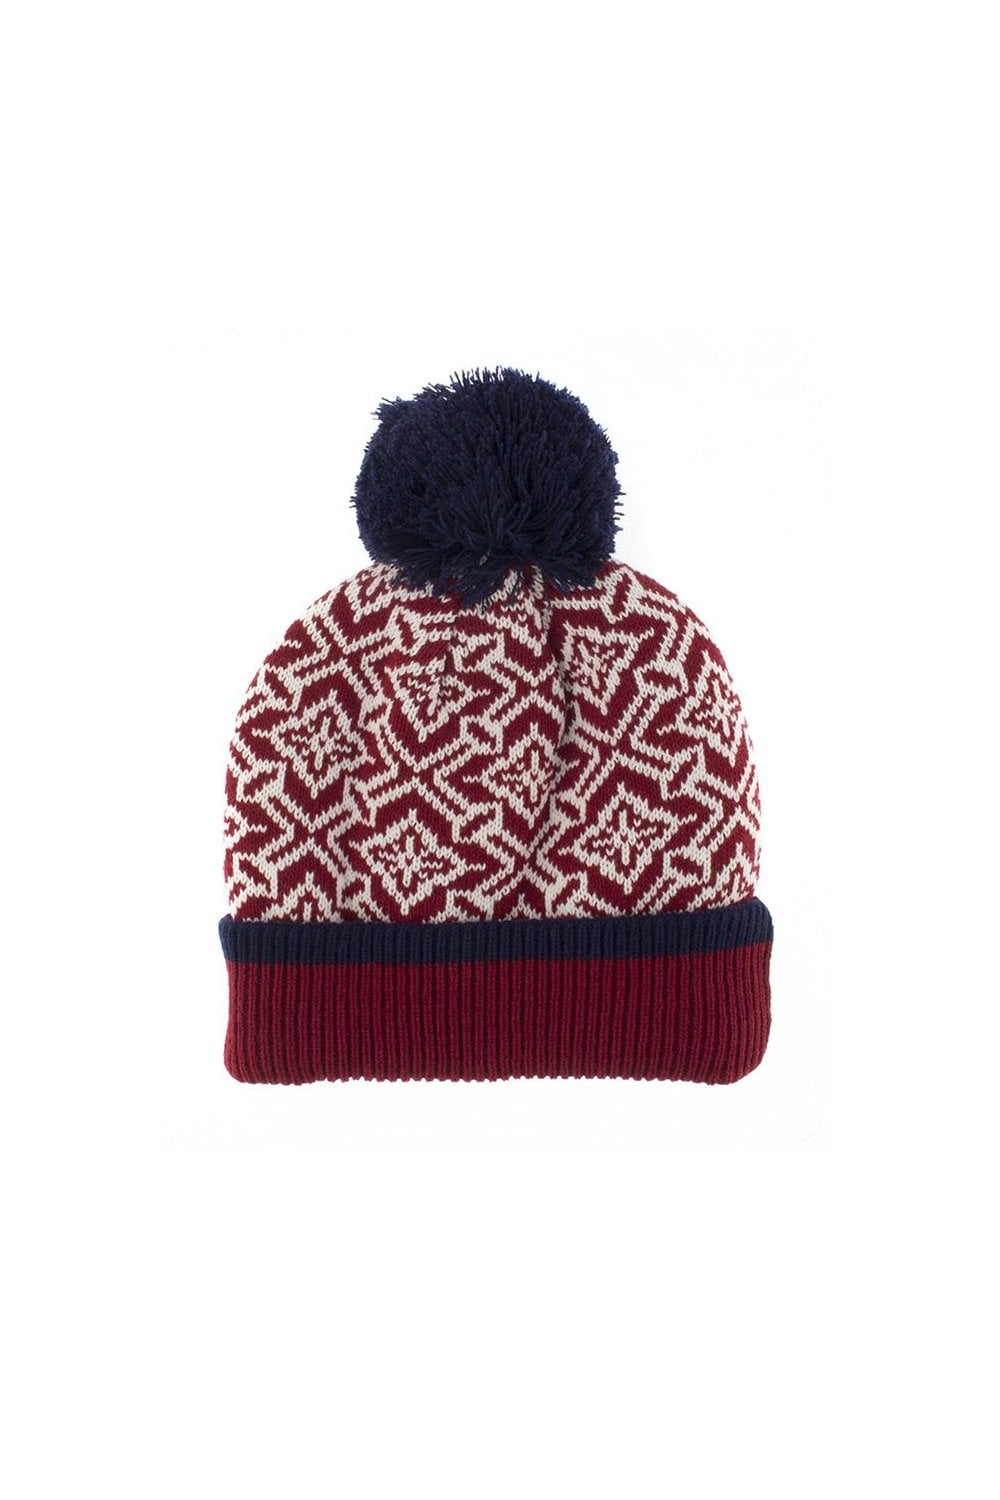 6be29f2d9ea Dents Womens Nordic Pattern Knitted Hat with Pom Pom - Womenswear ...